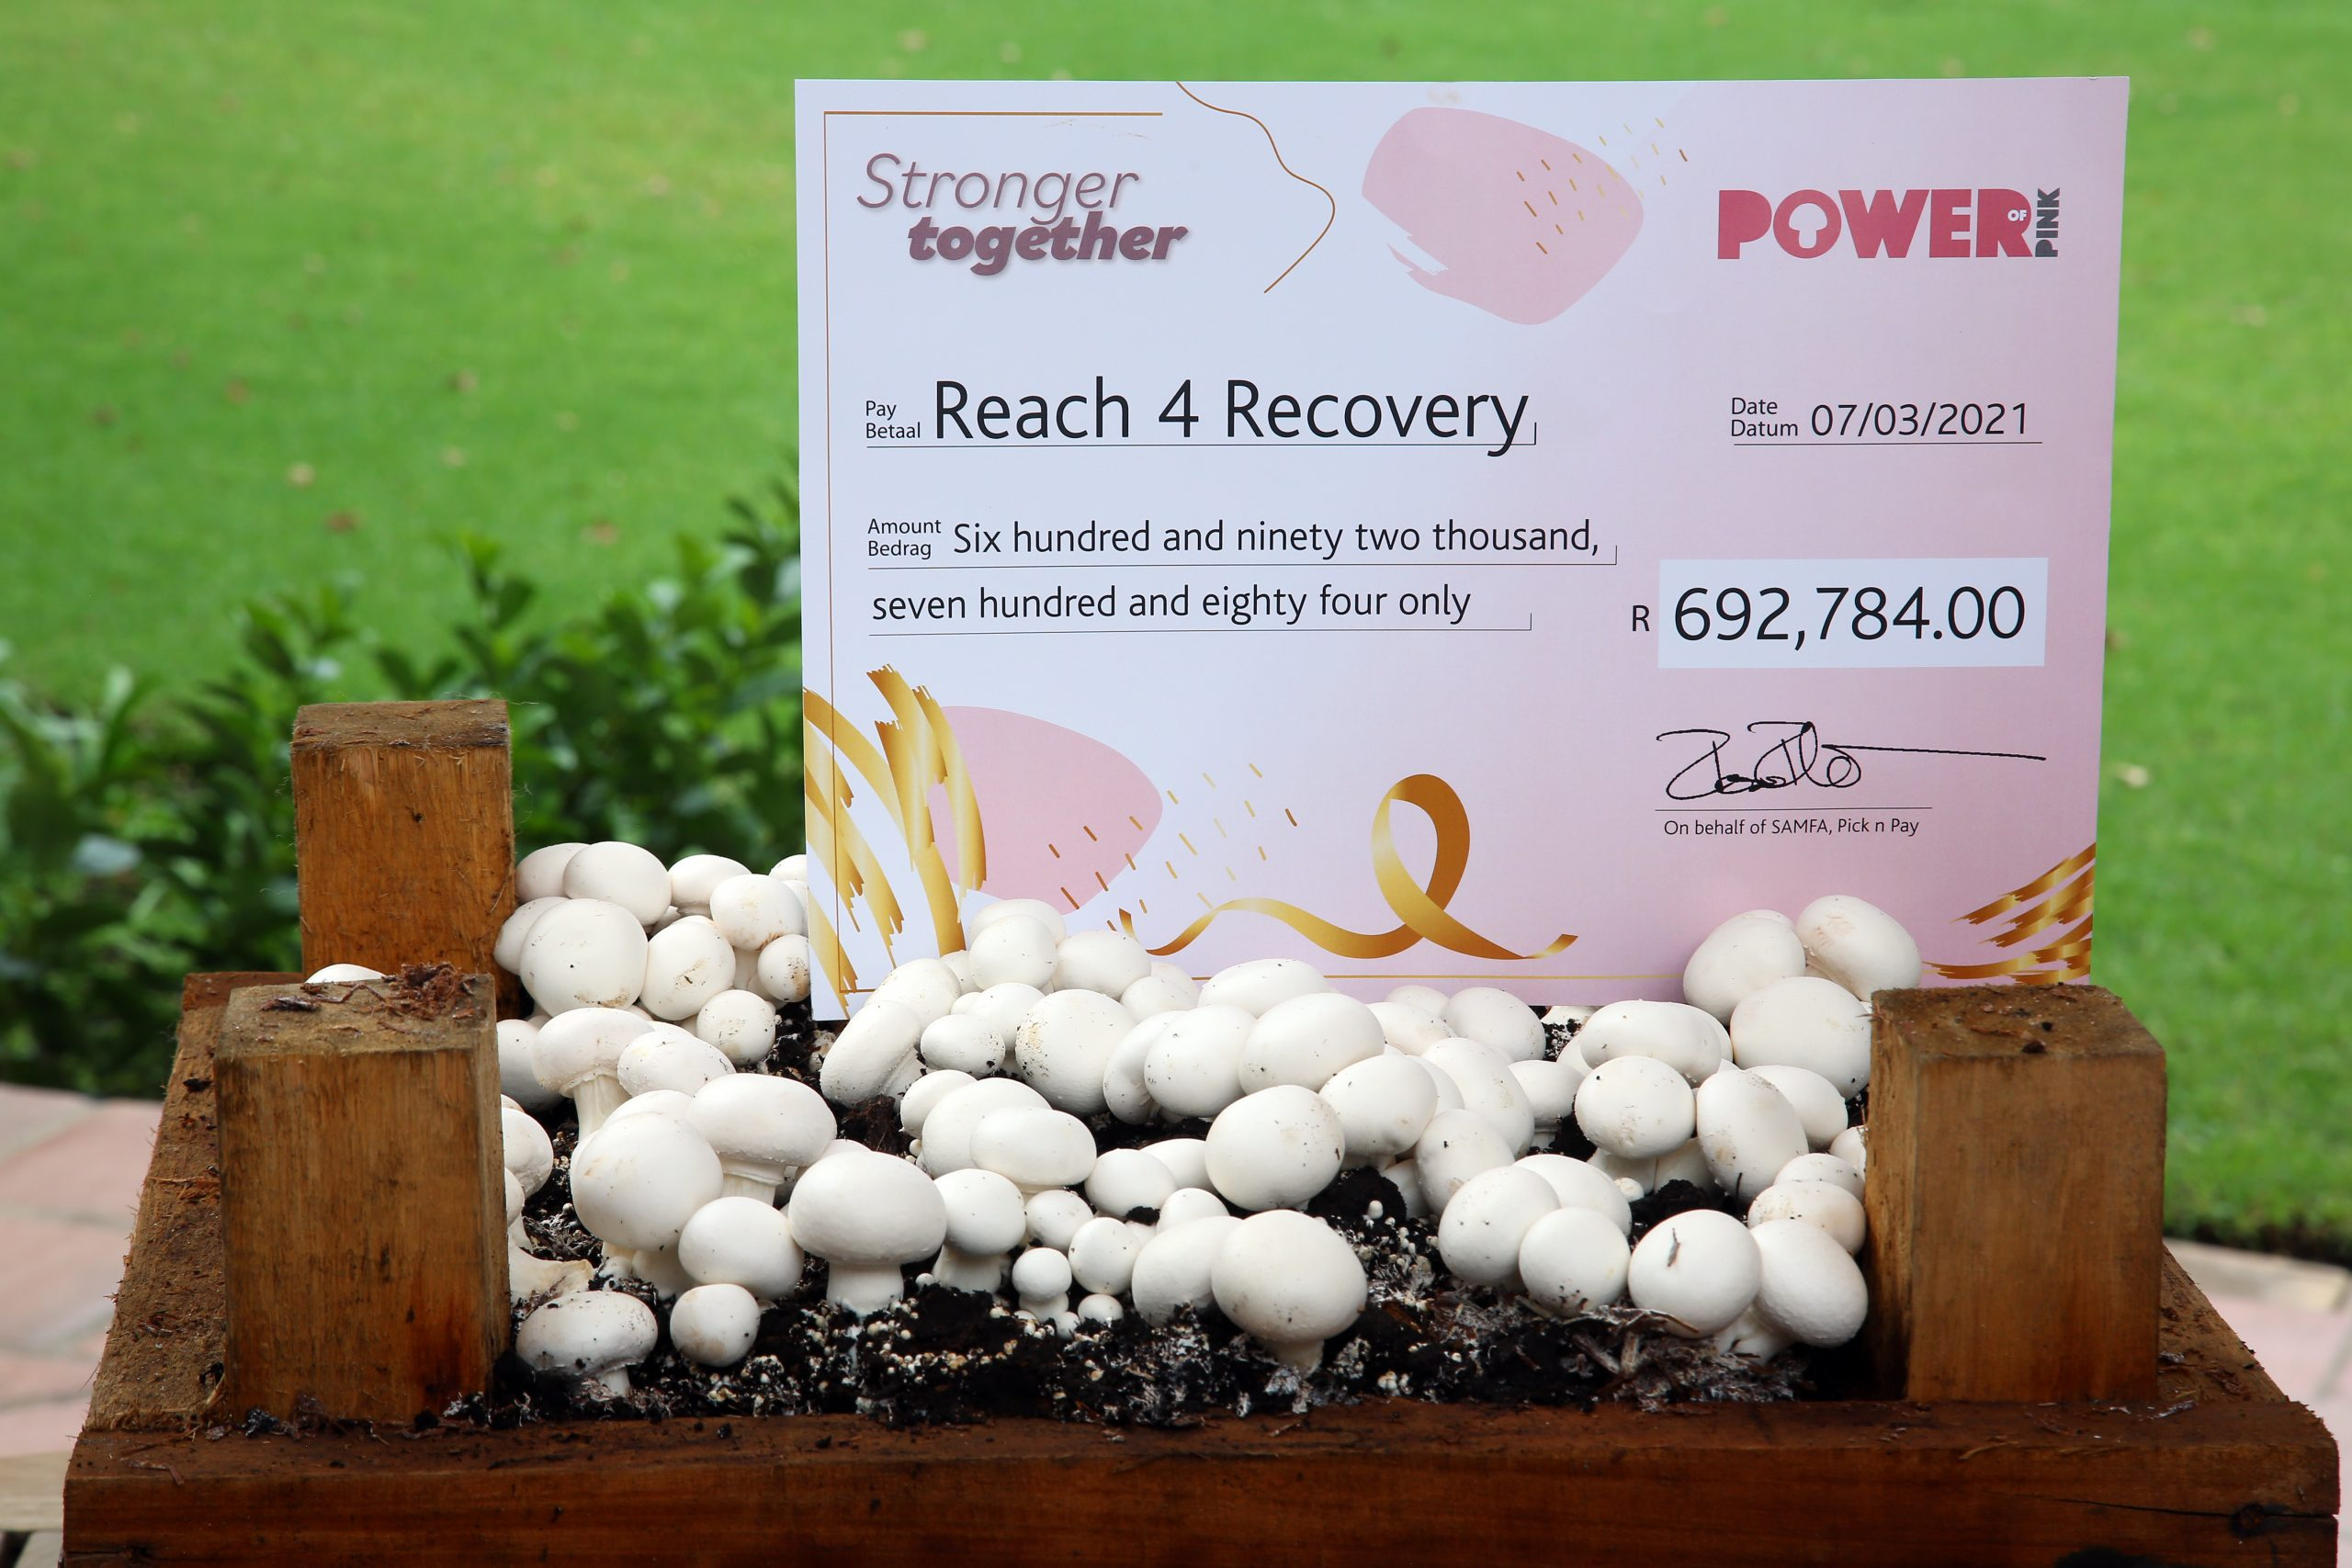 Reach for Recovery Raise over R600K support breast cancer survivors through its Power of Pink Campaign